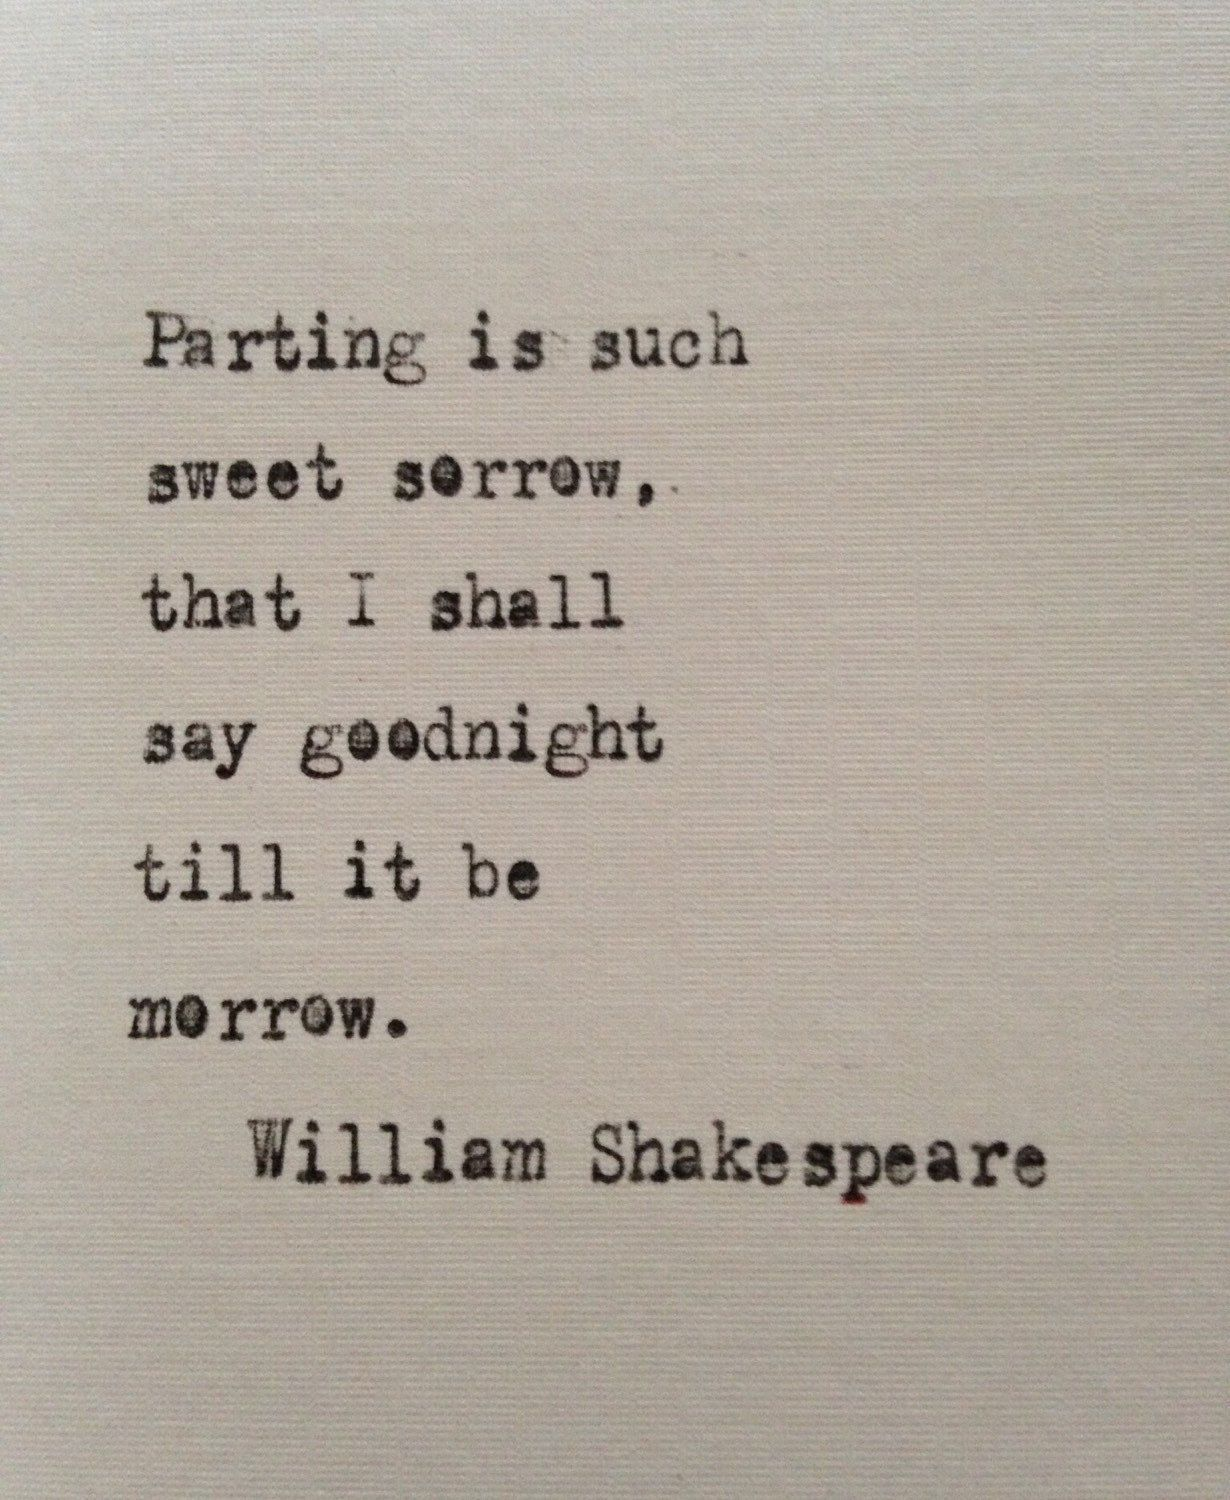 Romeo And Juliet Quotes William Shakespeare Romeo and Juliet quote typed on typewriter  Romeo And Juliet Quotes